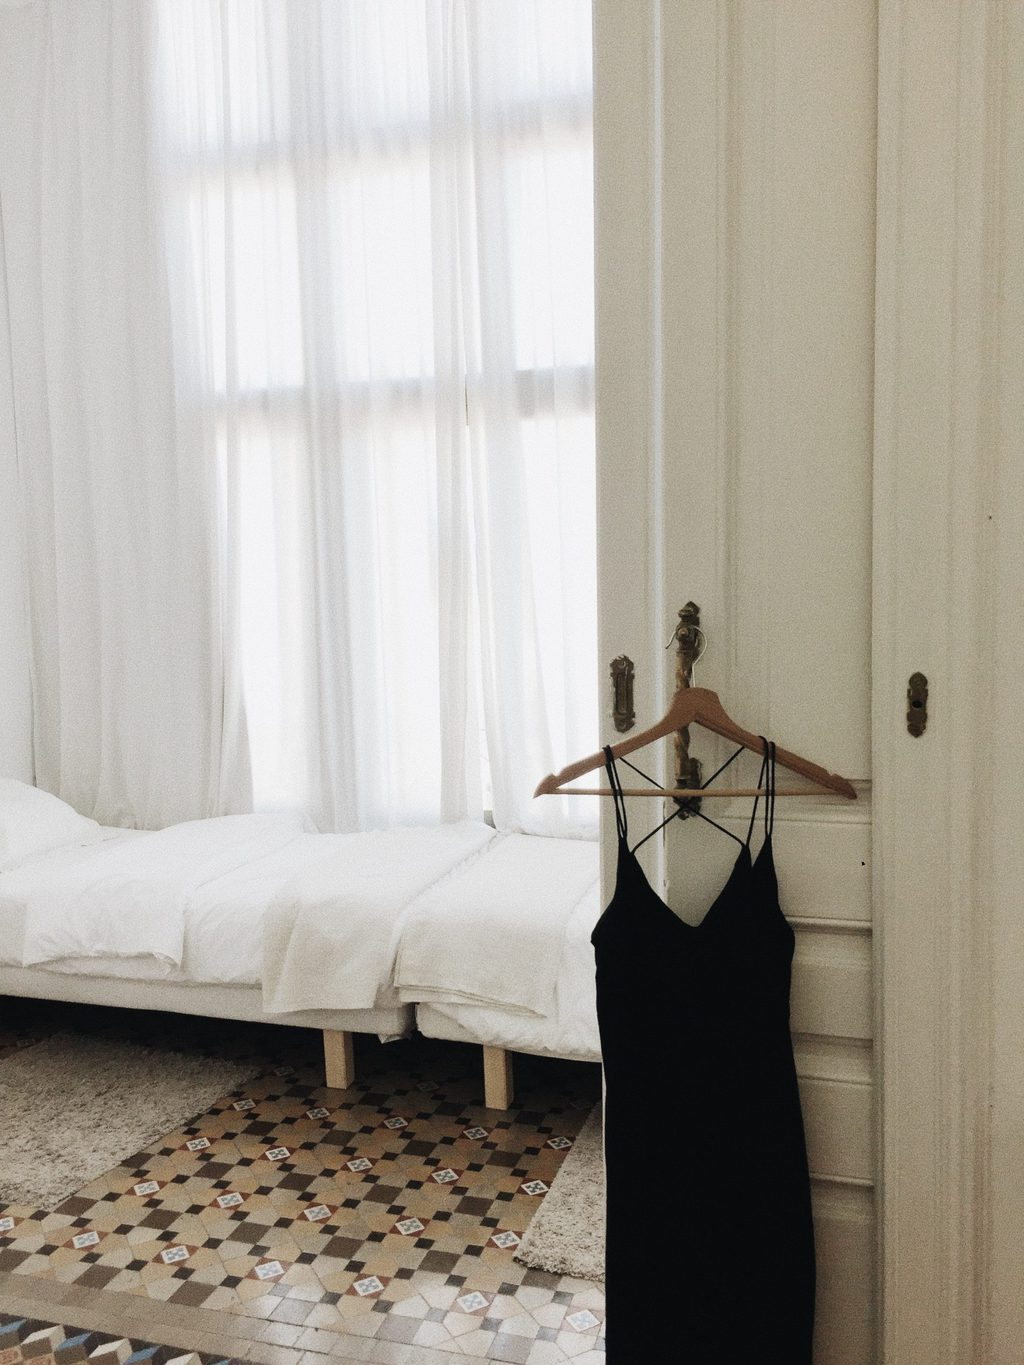 Little Black Dress hanging on a hanger on a door with a white bed in the background